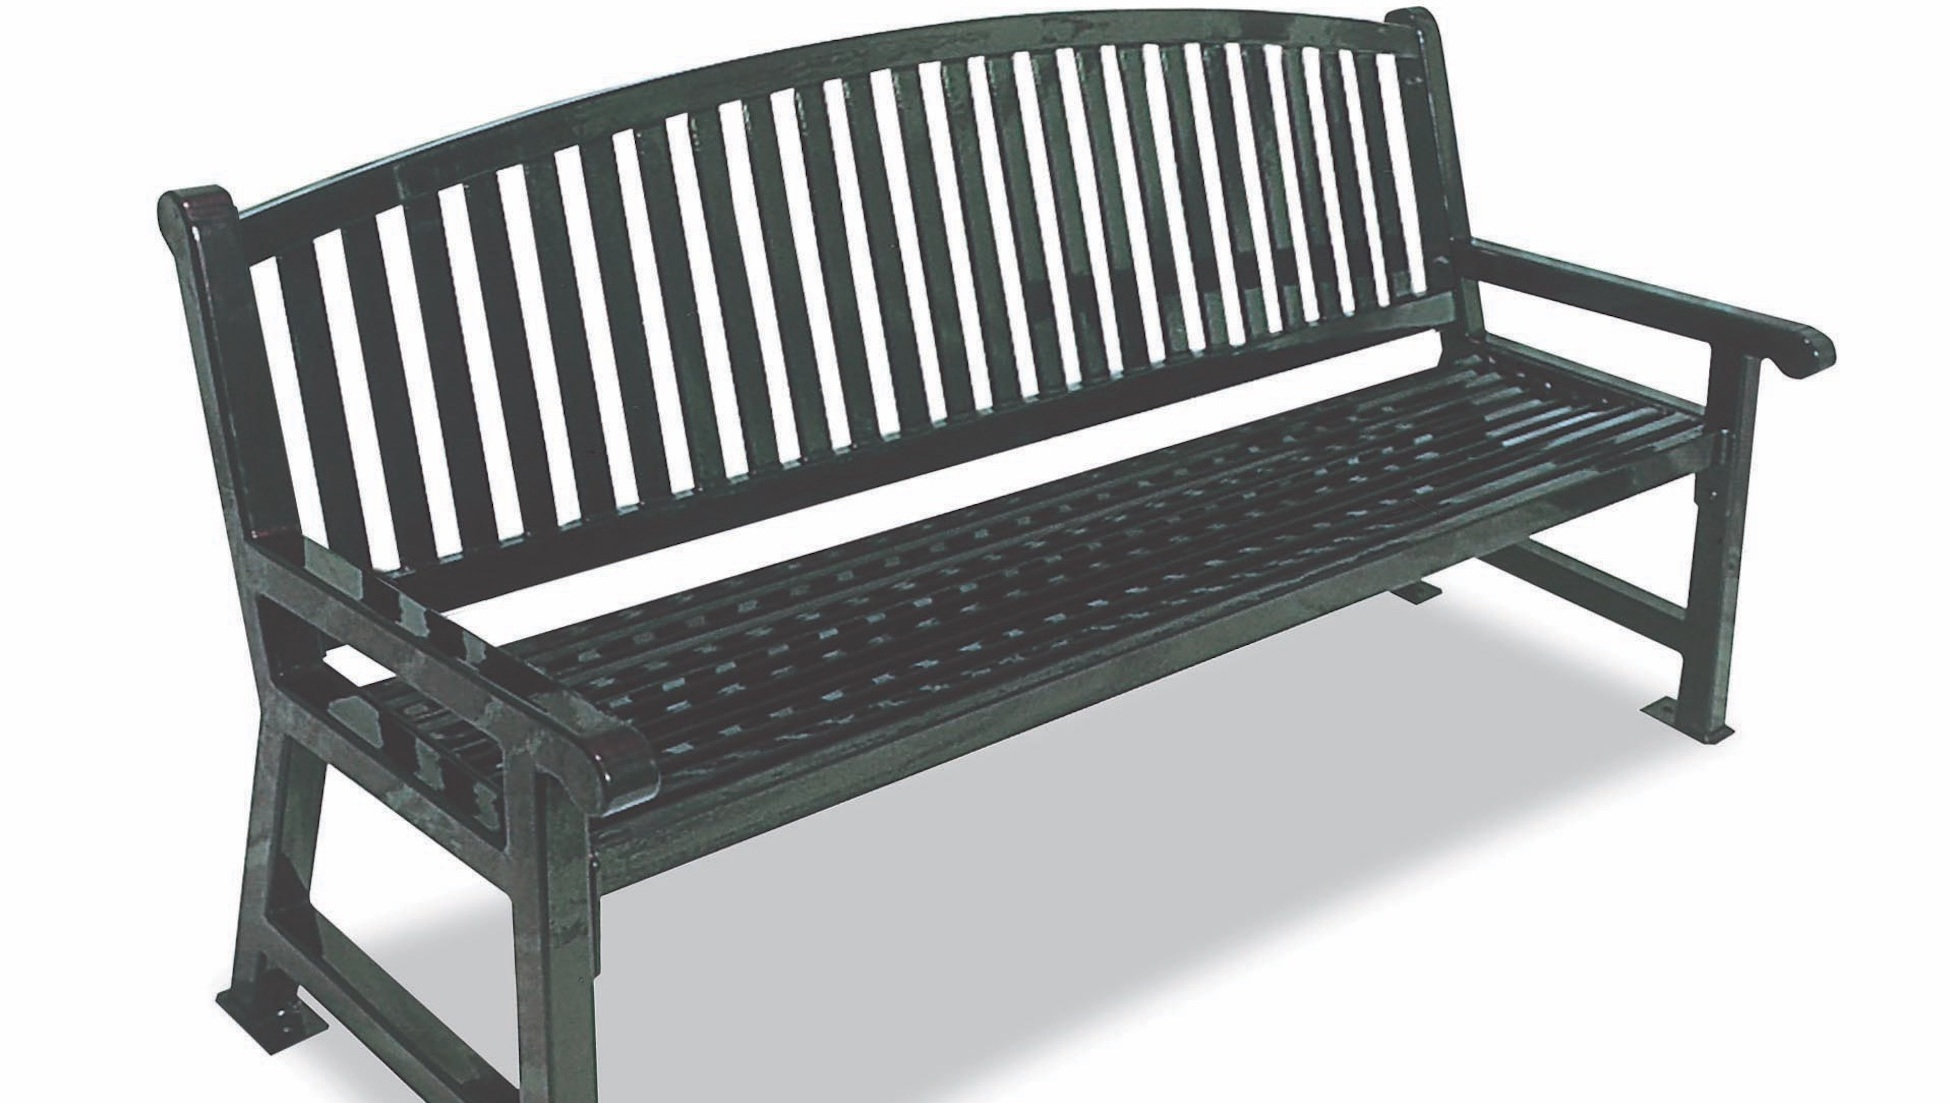 Series 300 Bench, Bow Style